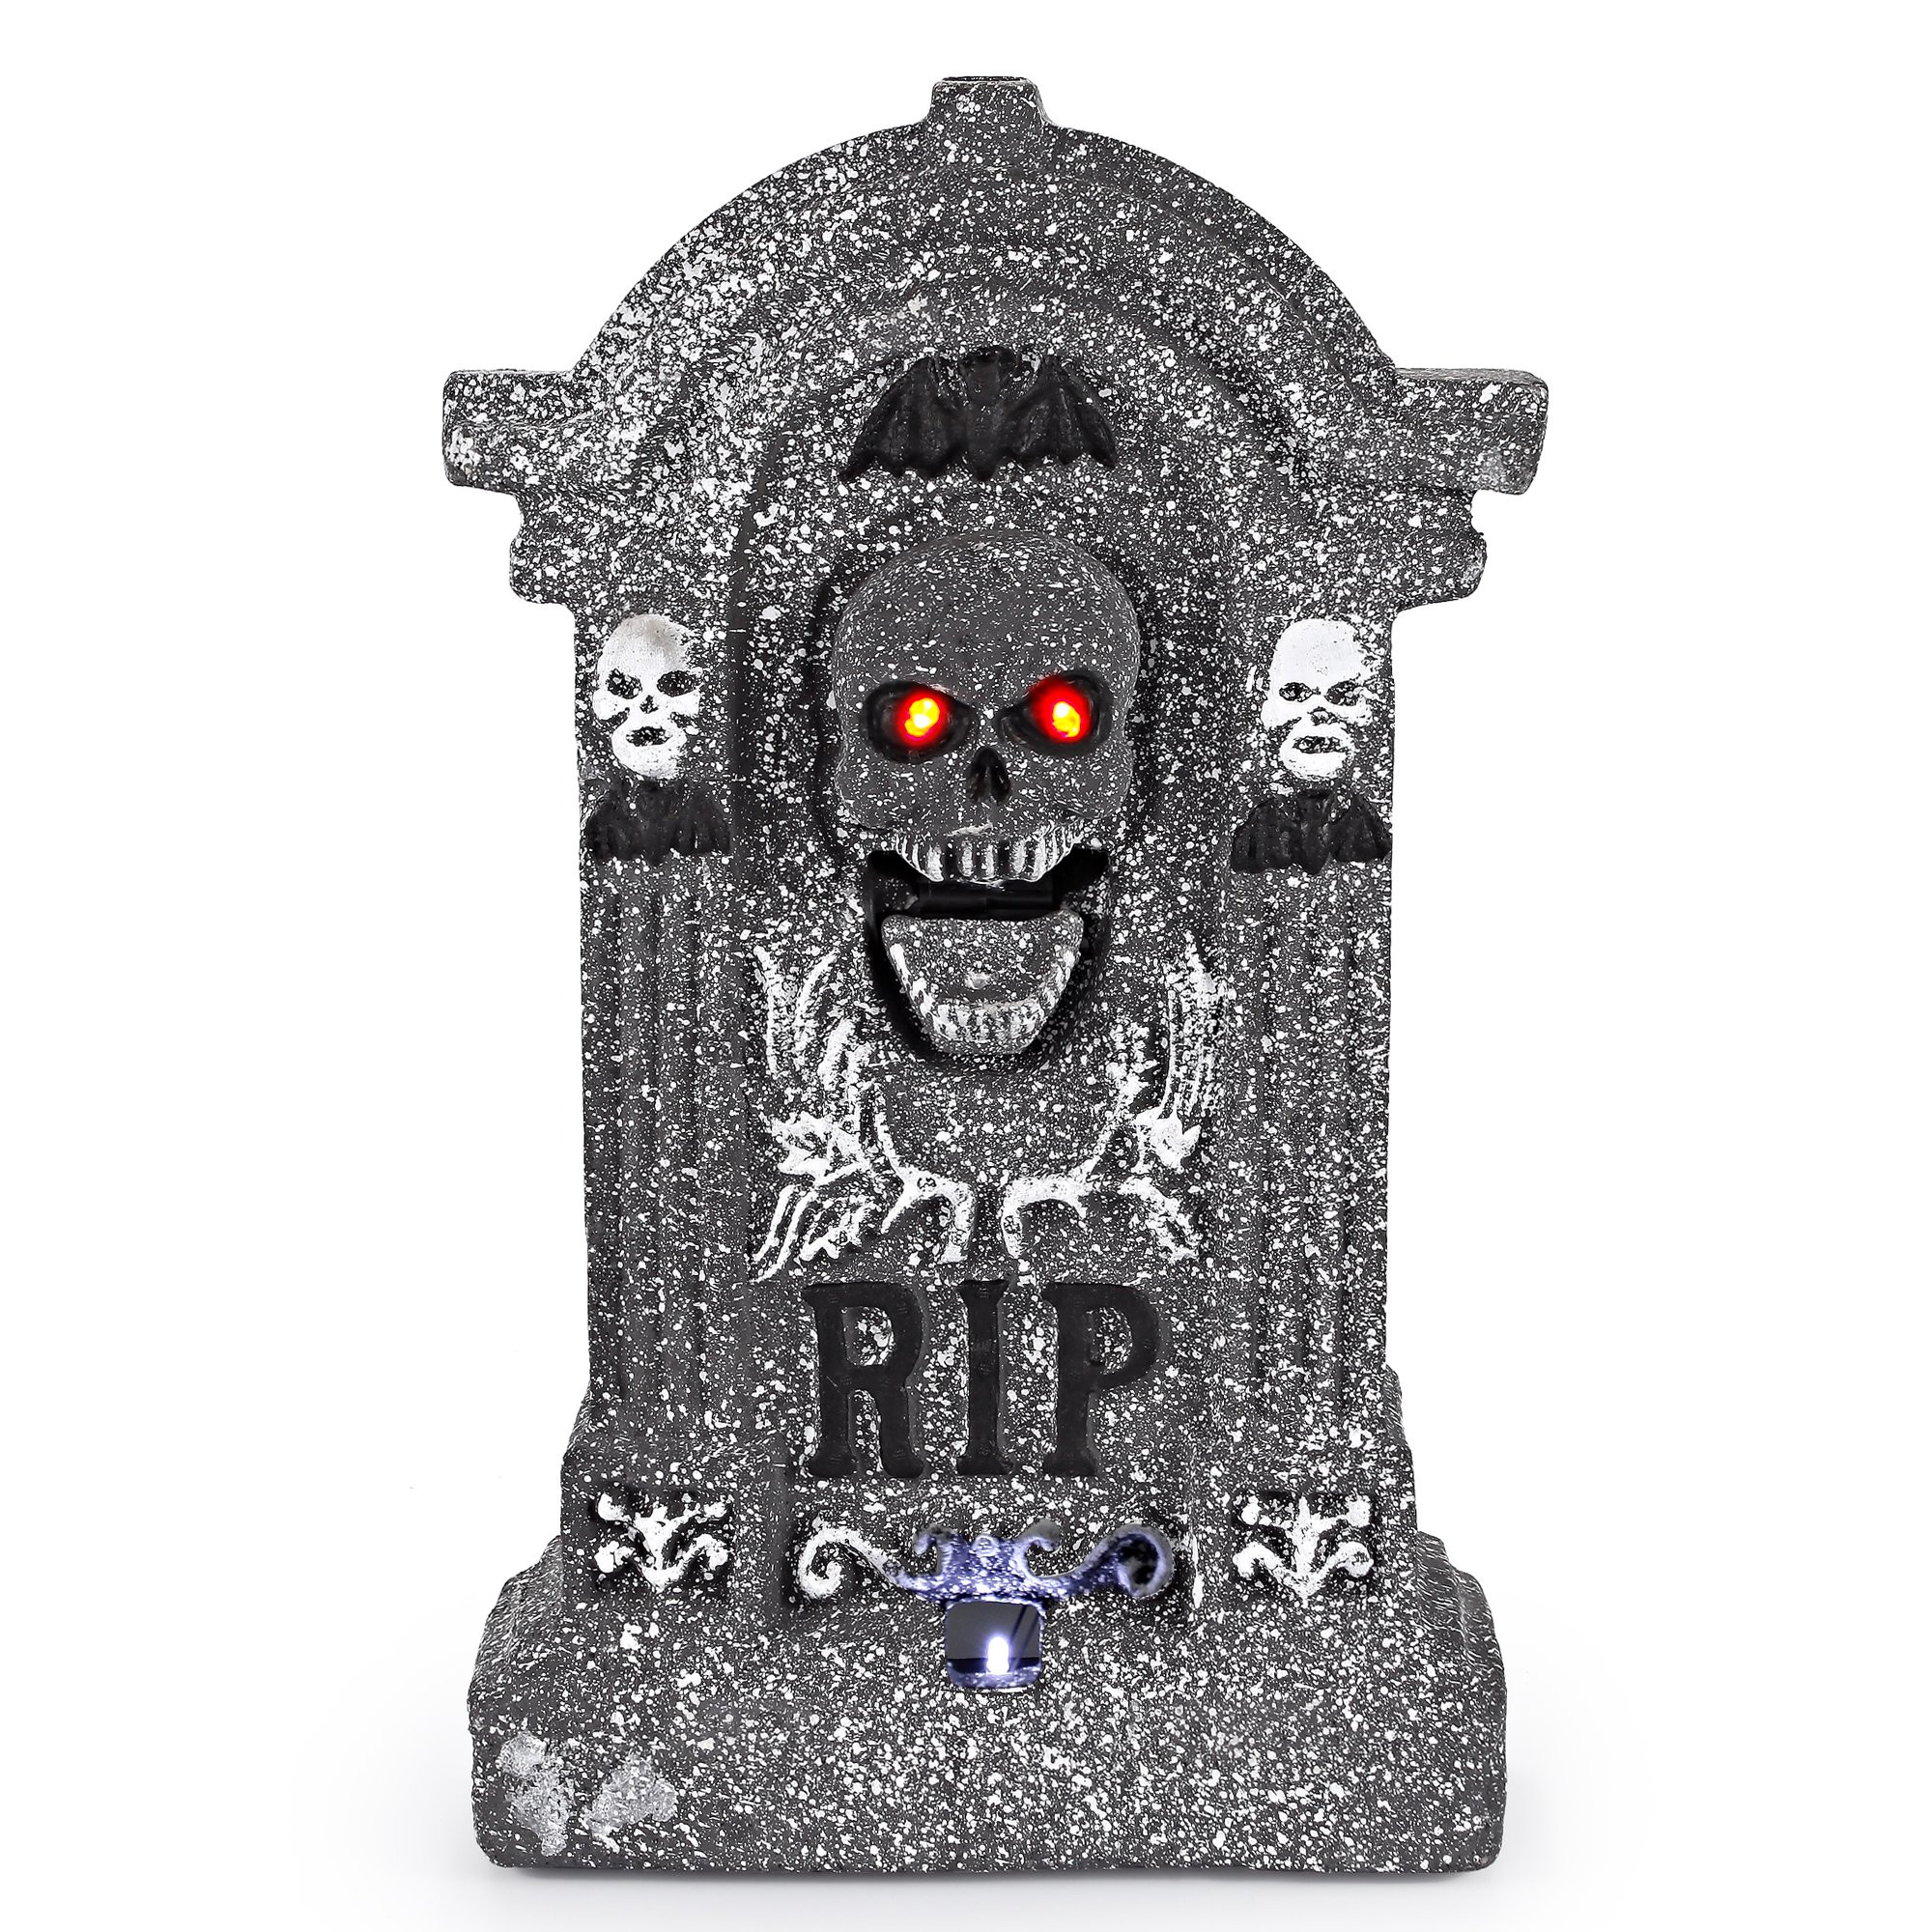 Halloween Outdoor Decorations Clearance  SCARY Animated Graveyard Tombstone Prop Halloween Outdoor